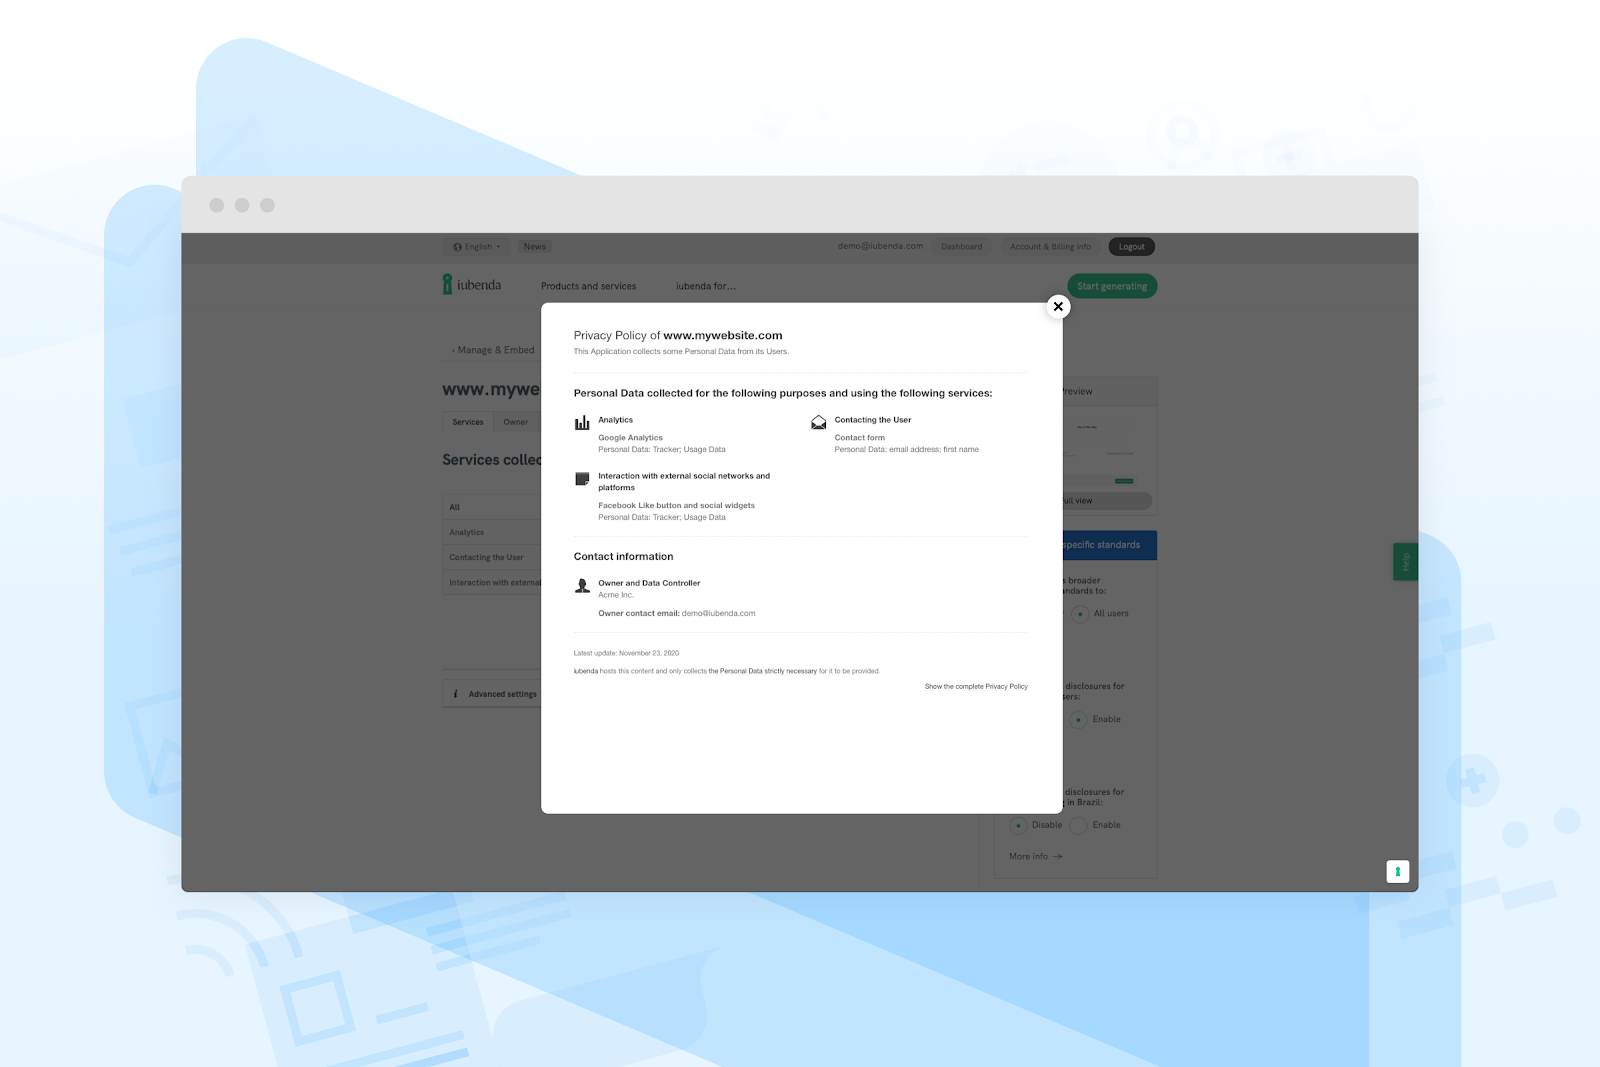 Get automatic updates for legal documents whenever laws change, with close monitoring from legal experts!